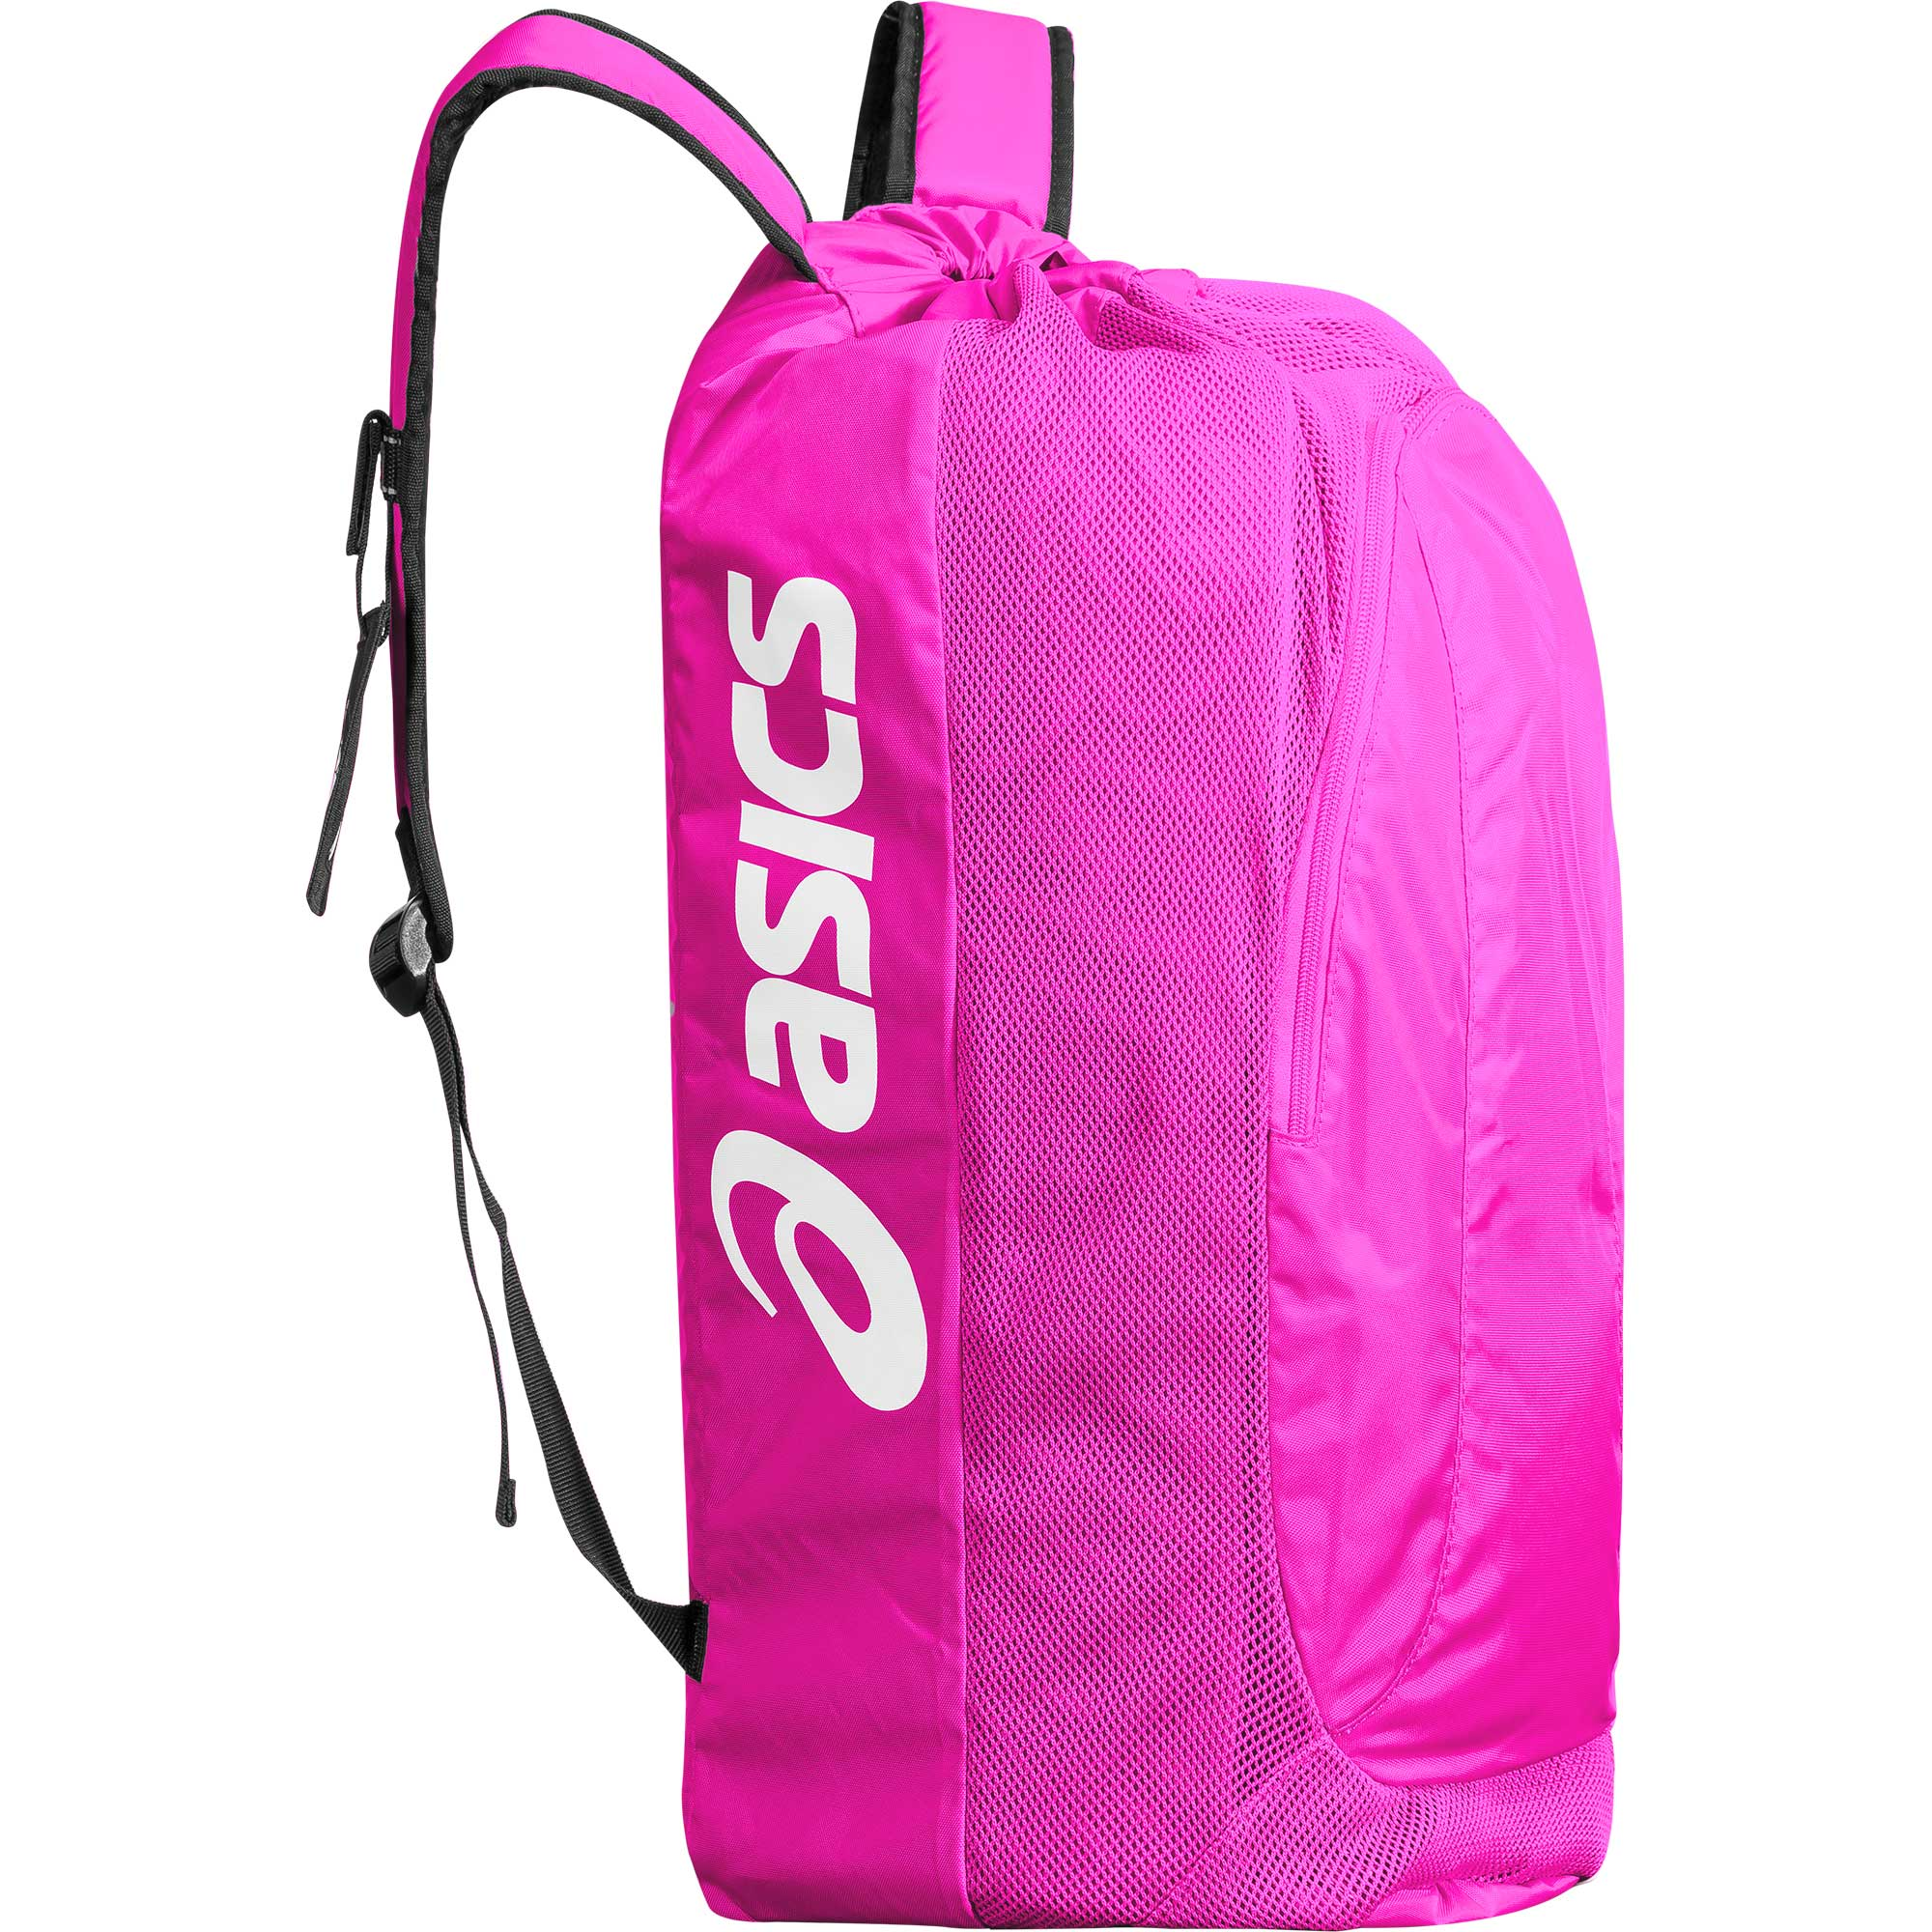 2674672955 asics bag Pink Sale,up to 46% Discounts